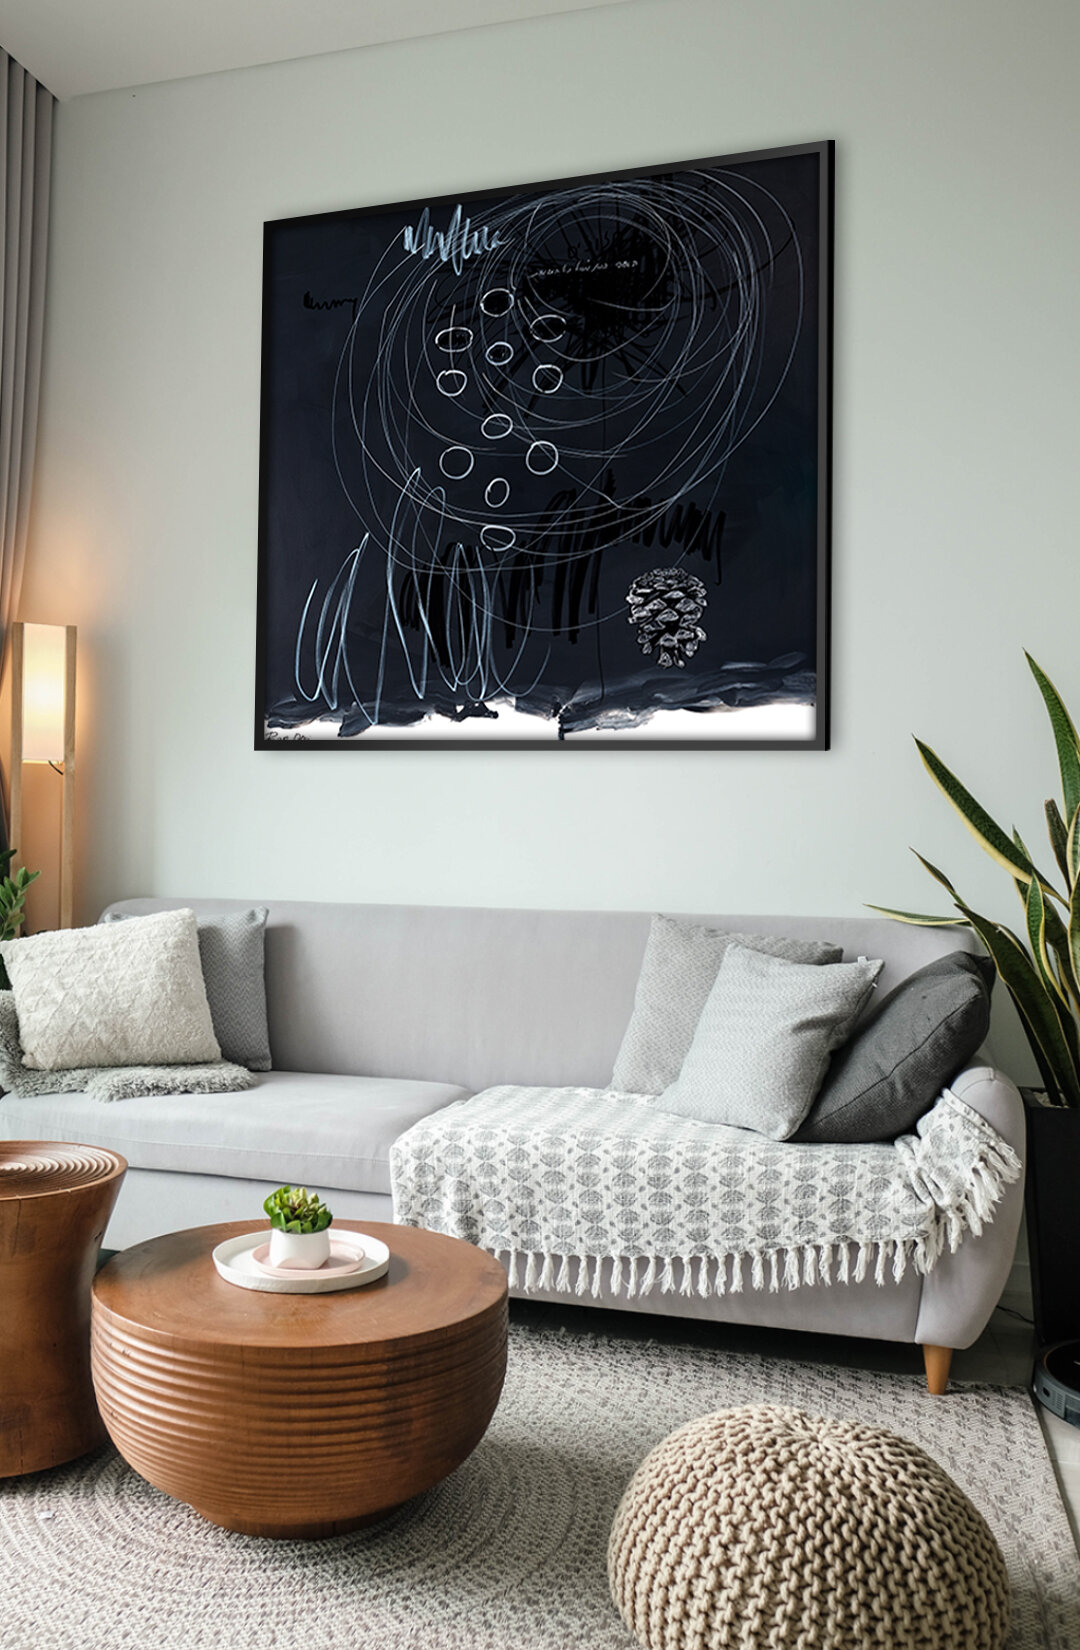 Black and white abstract art wall decor inspiration